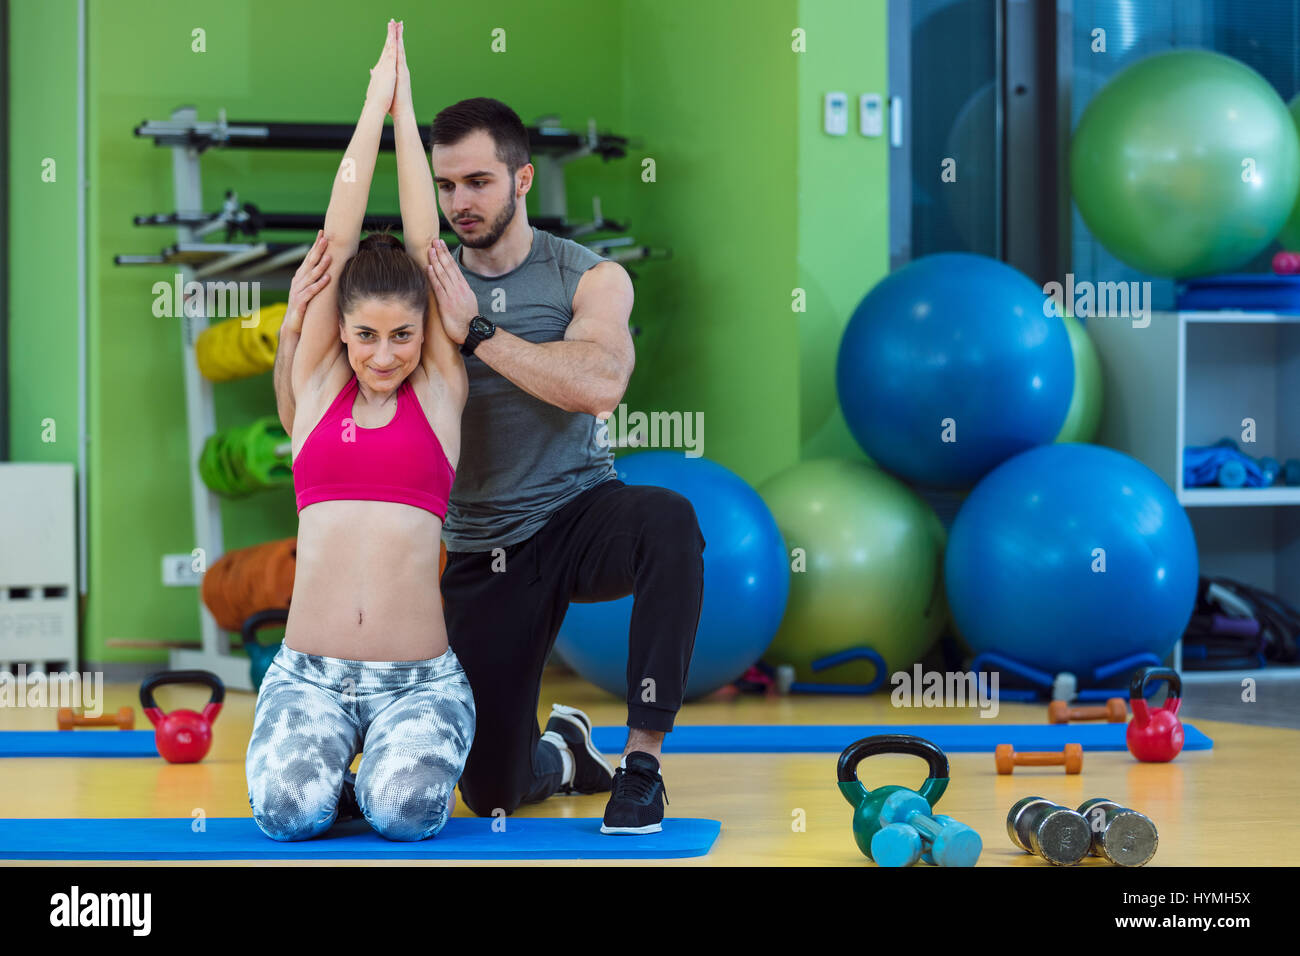 Young woman working out with personal trainer at the gym. Stock Photo